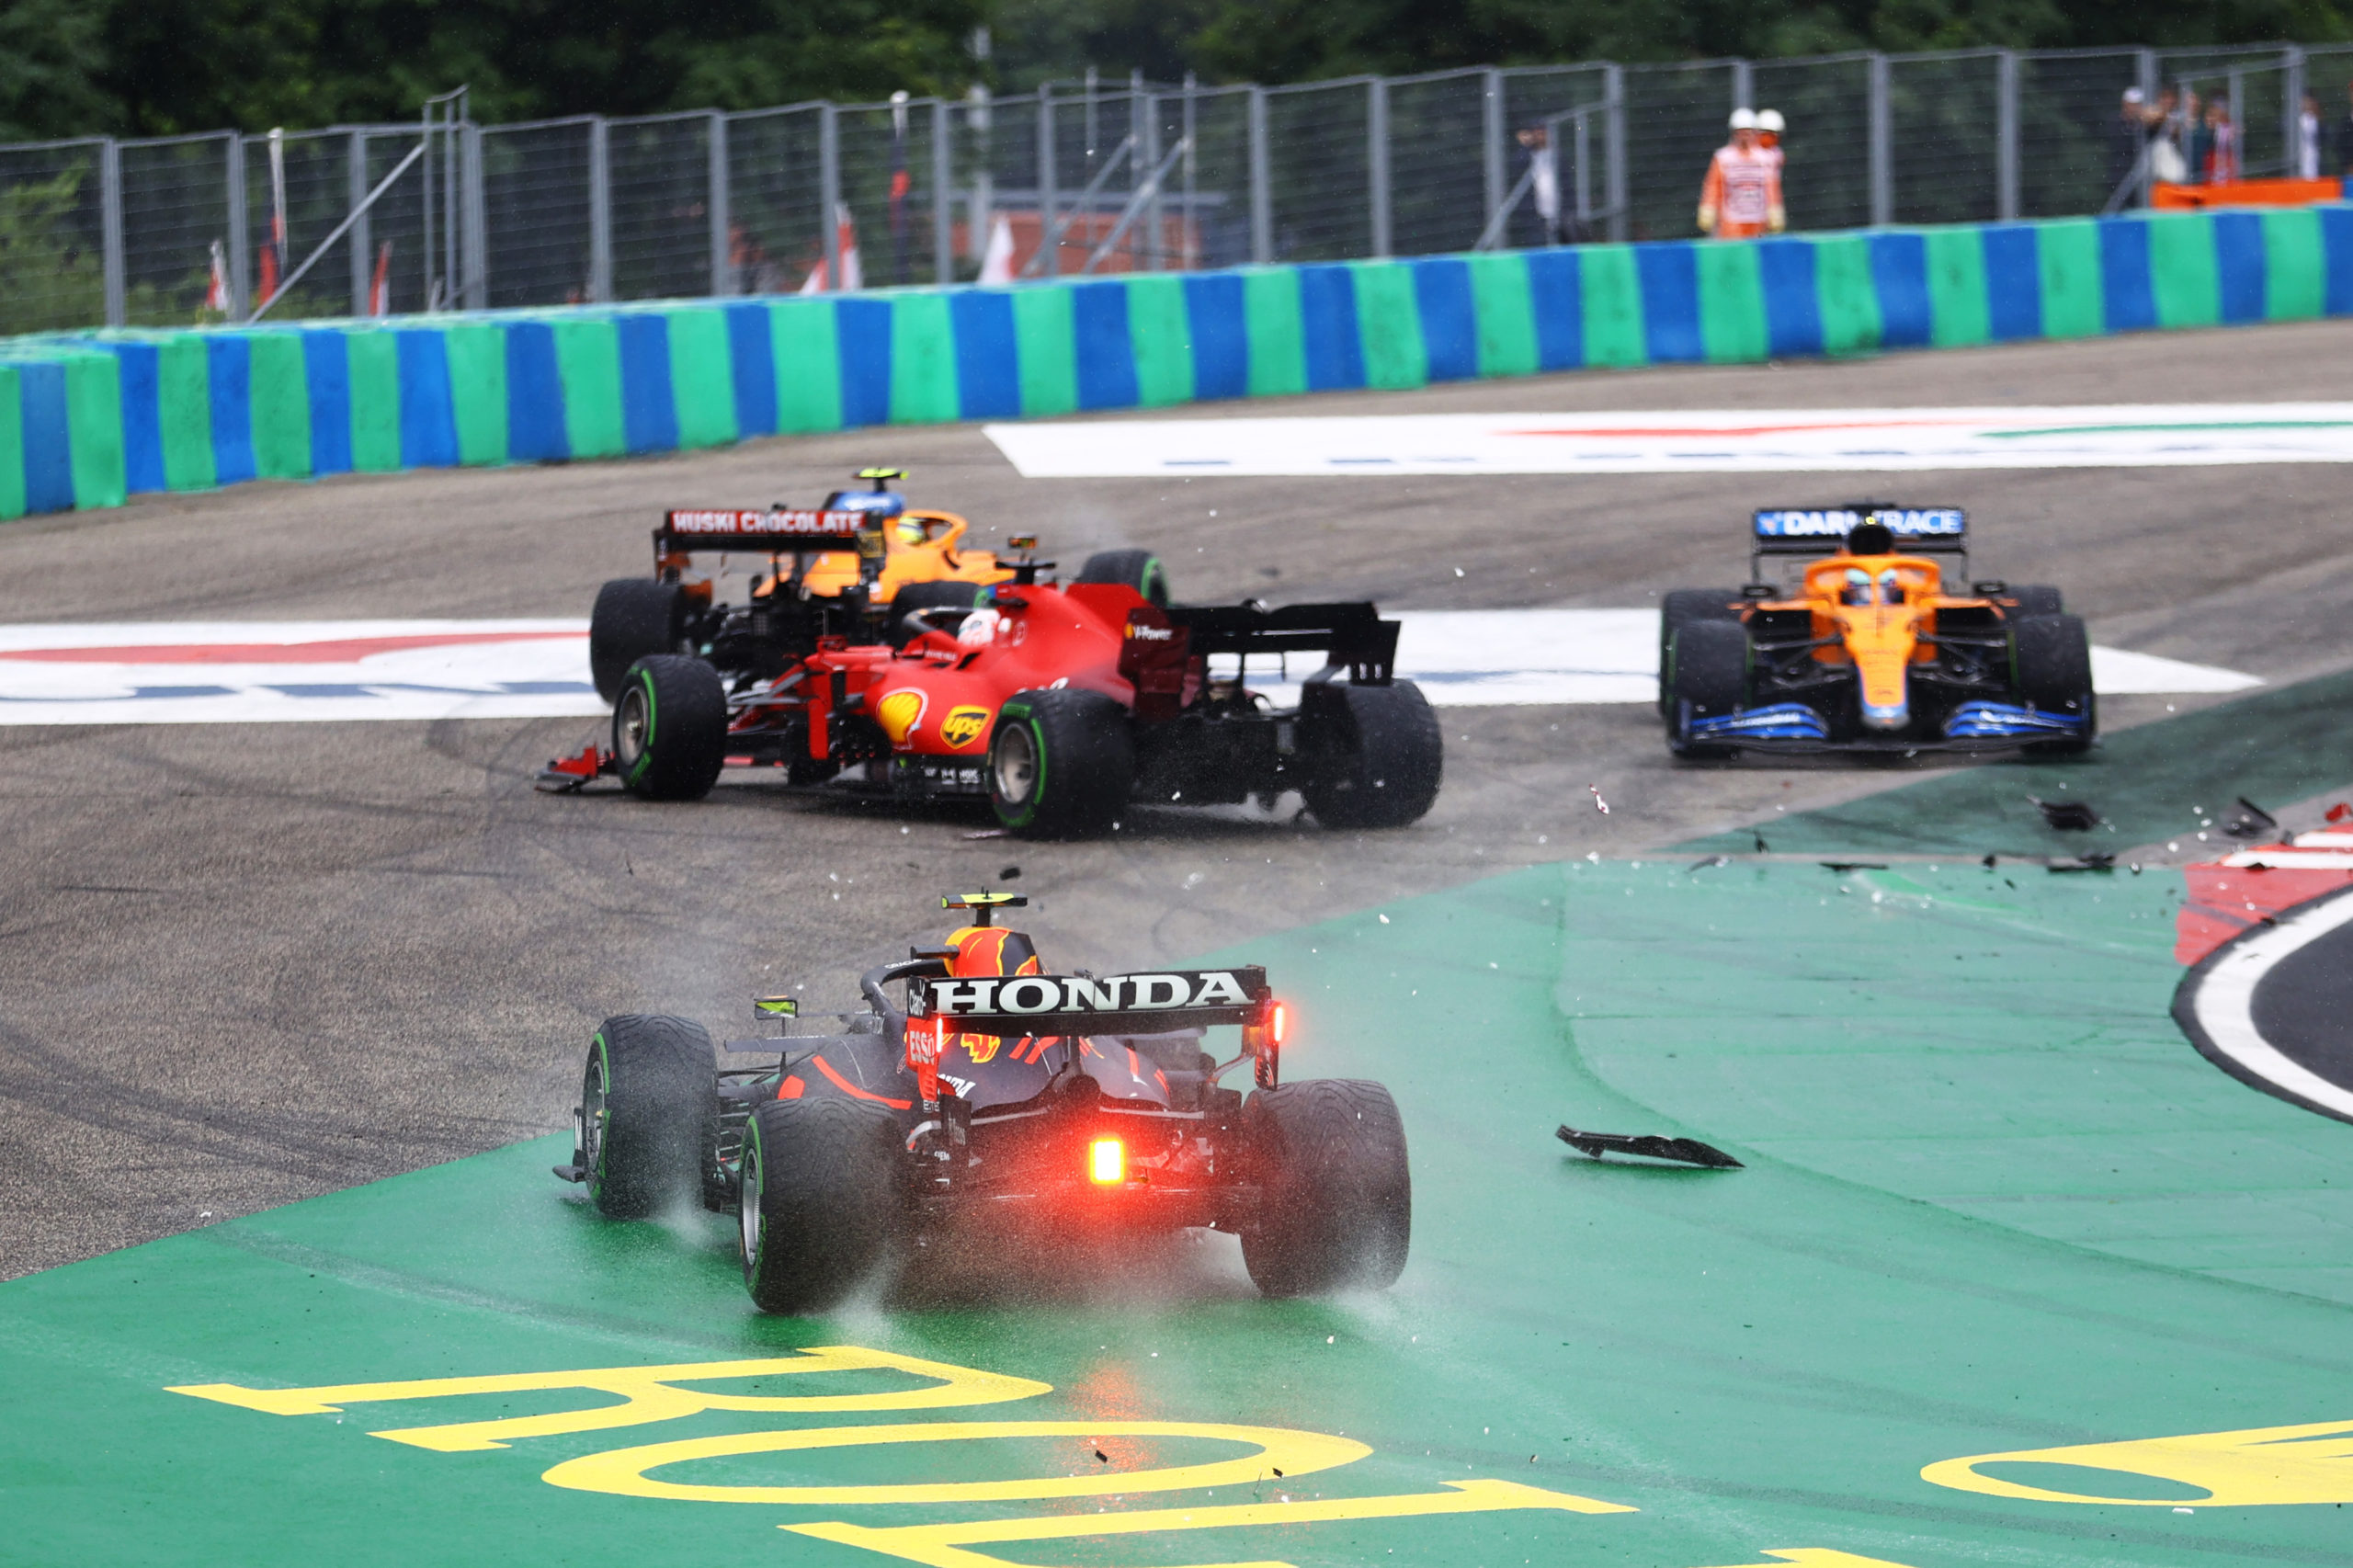 BUDAPEST, HUNGARY - AUGUST 01: Sergio Perez of Mexico driving the (11) Red Bull Racing RB16B Honda runs wide at the start as cars tangle ahead of him during the F1 Grand Prix of Hungary at Hungaroring on August 01, 2021 in Budapest, Hungary. (Photo by Bryn Lennon/Getty Images) // Getty Images / Red Bull Content Pool  // SI202108010225 // Usage for editorial use only //